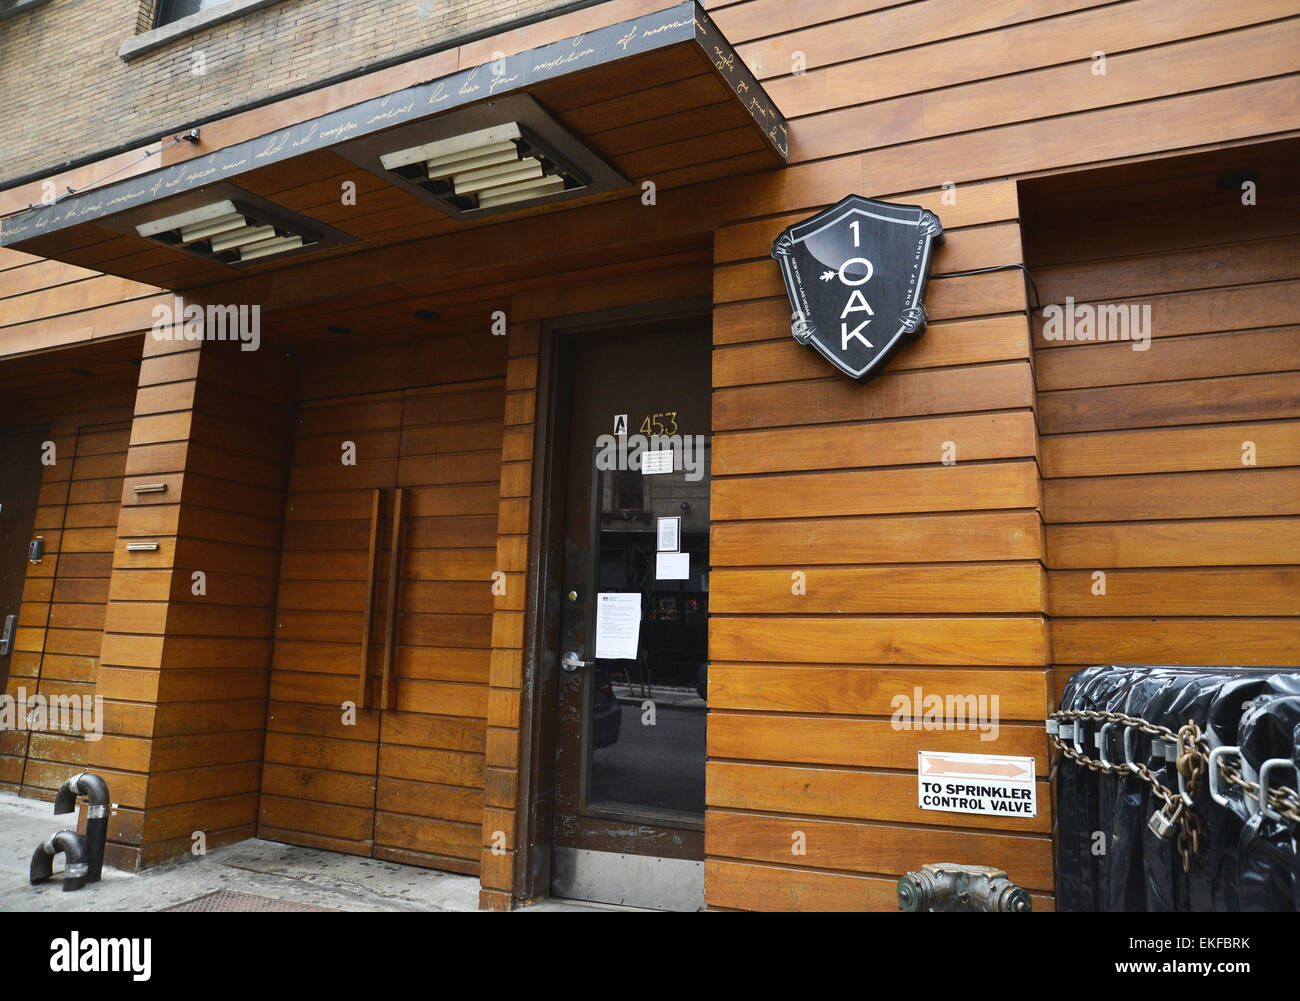 The exterior of 1 Oak nightclub in New York City. This club is the scene of many criminal acts. Photo by Steve Mann - Stock Image